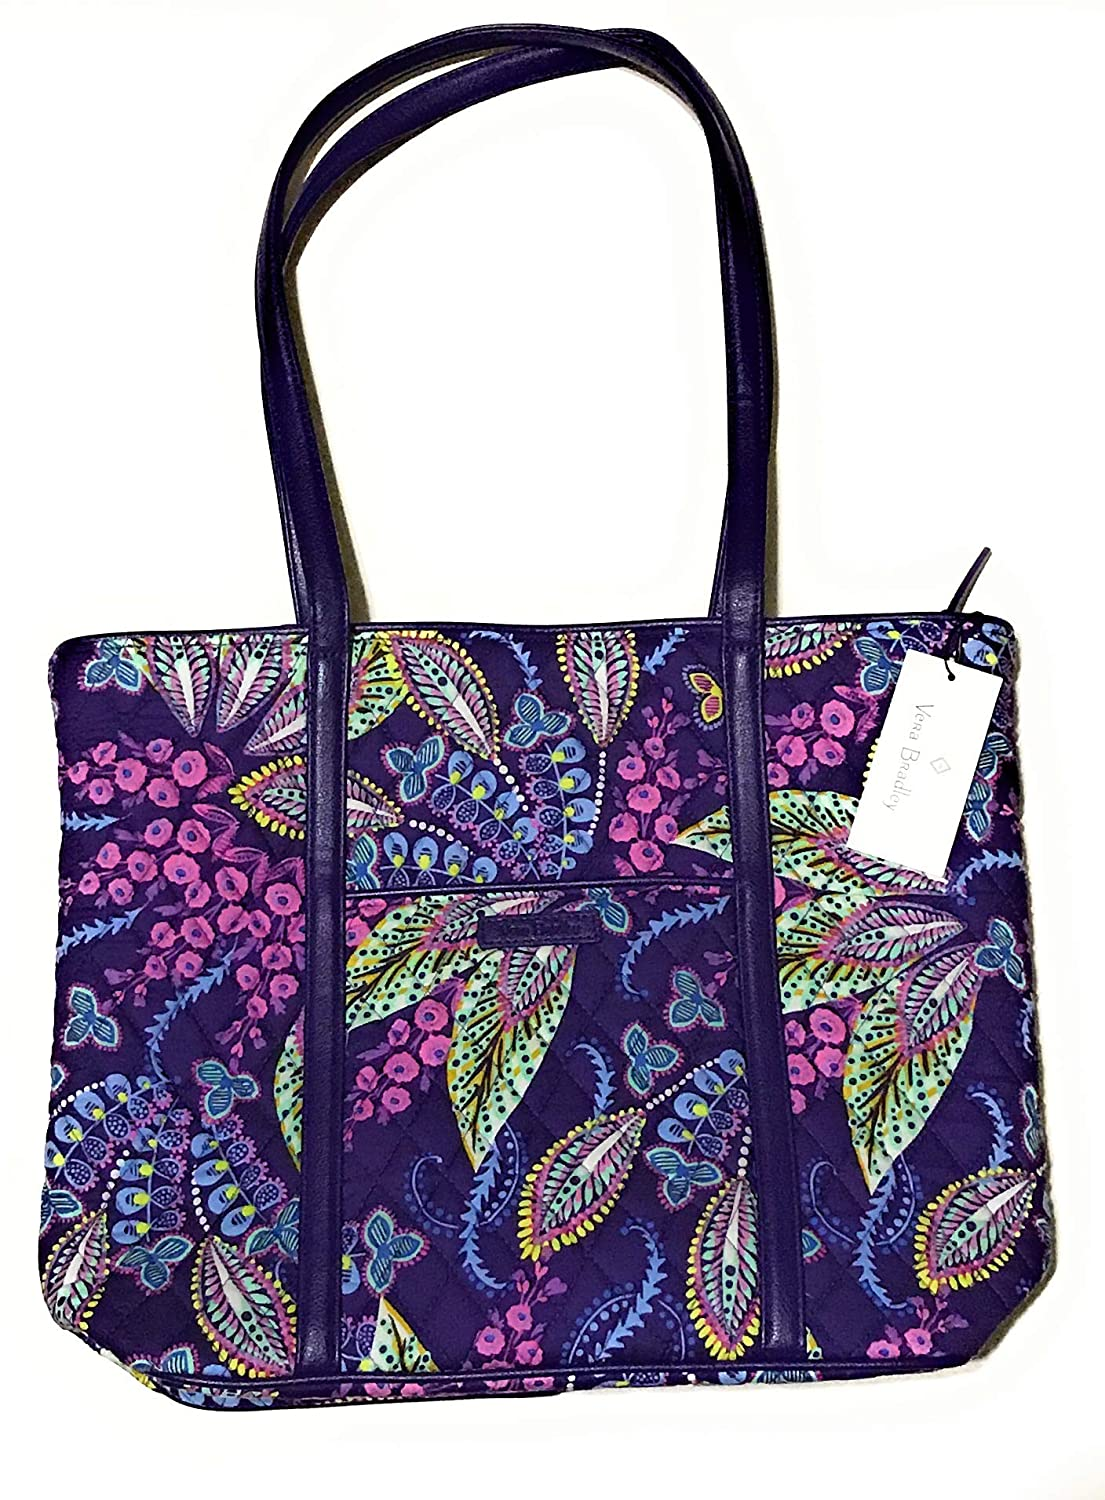 4aec21c5f Amazon.com: Vera Bradley Small Trimmed Vera Batik Leaves: Shoes